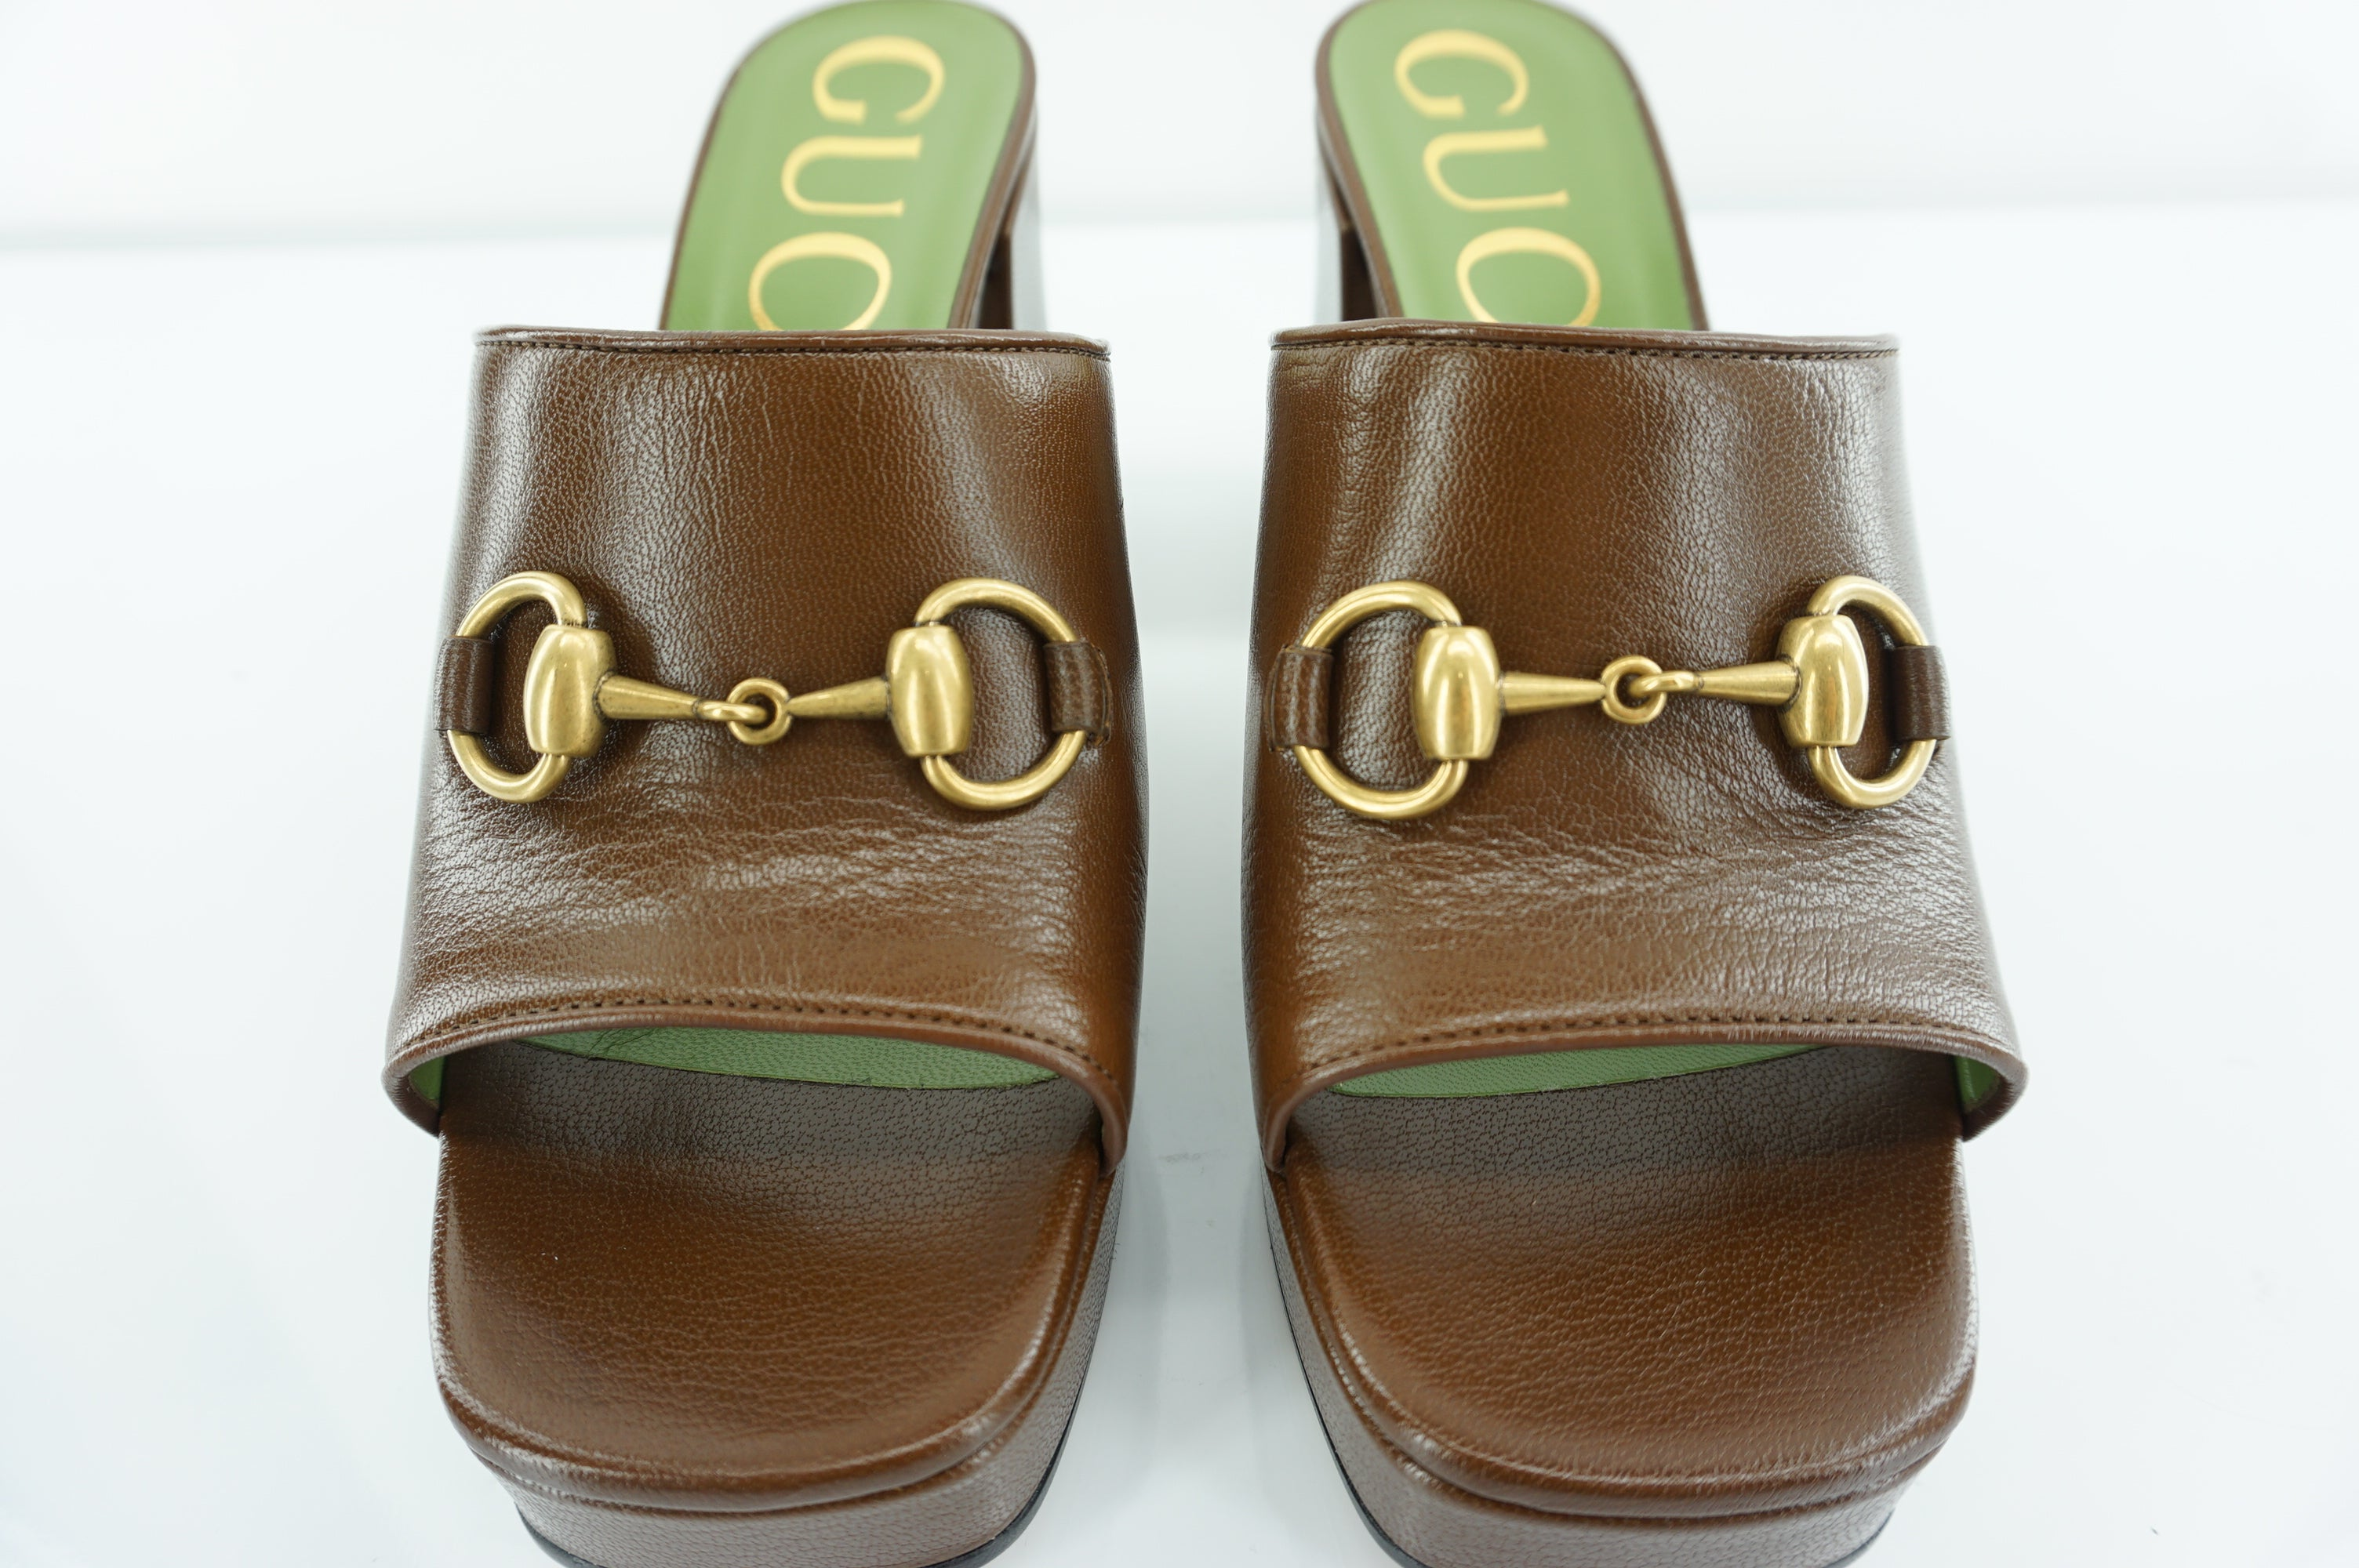 Gucci Houdan Brown Square Toe Slide Mule Platform Sandals SZ 36 Horse bit $840